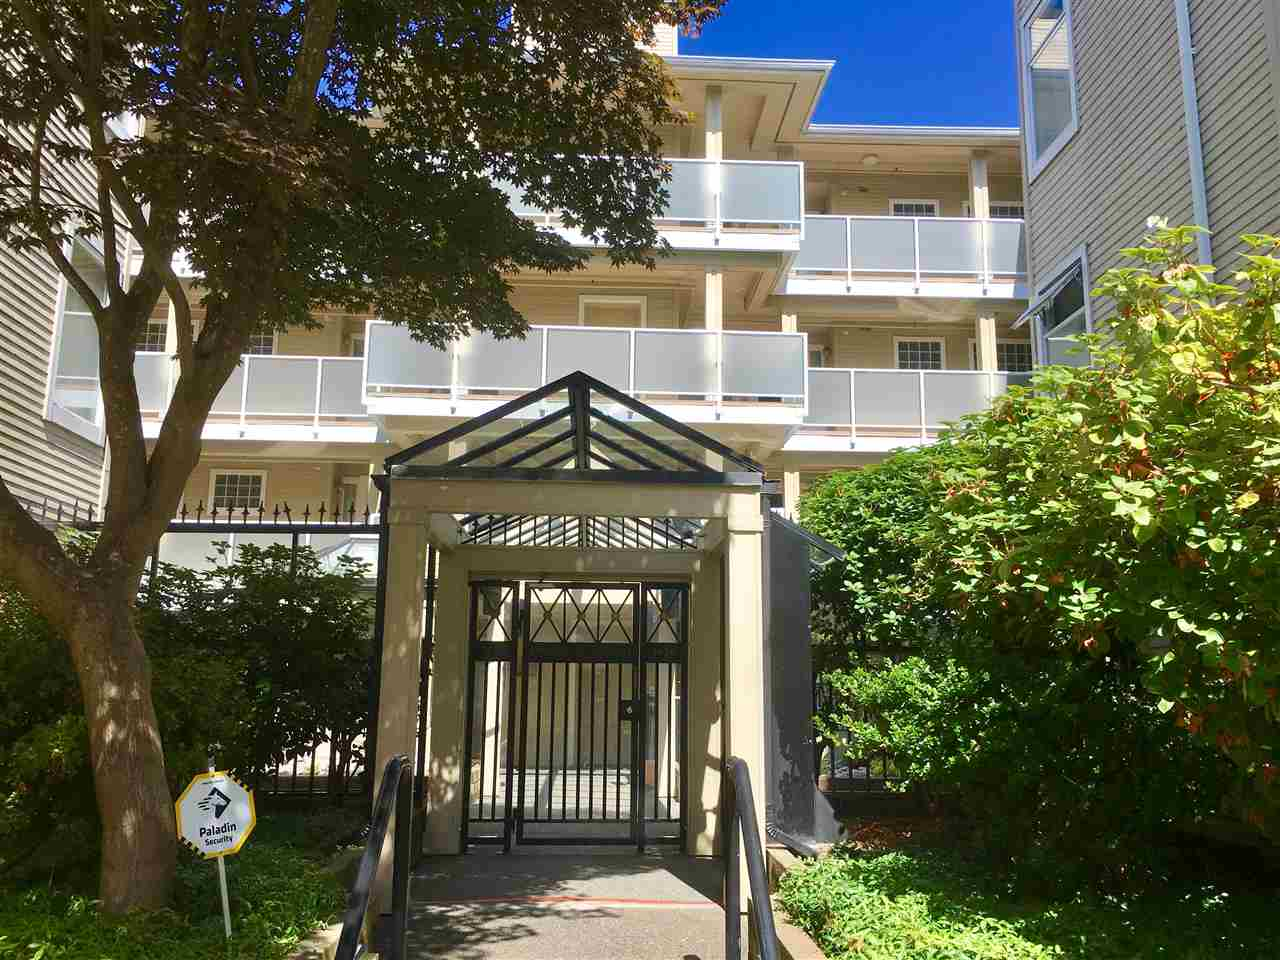 Condo Apartment at 205 7620 COLUMBIA STREET, Unit 205, Vancouver West, British Columbia. Image 1